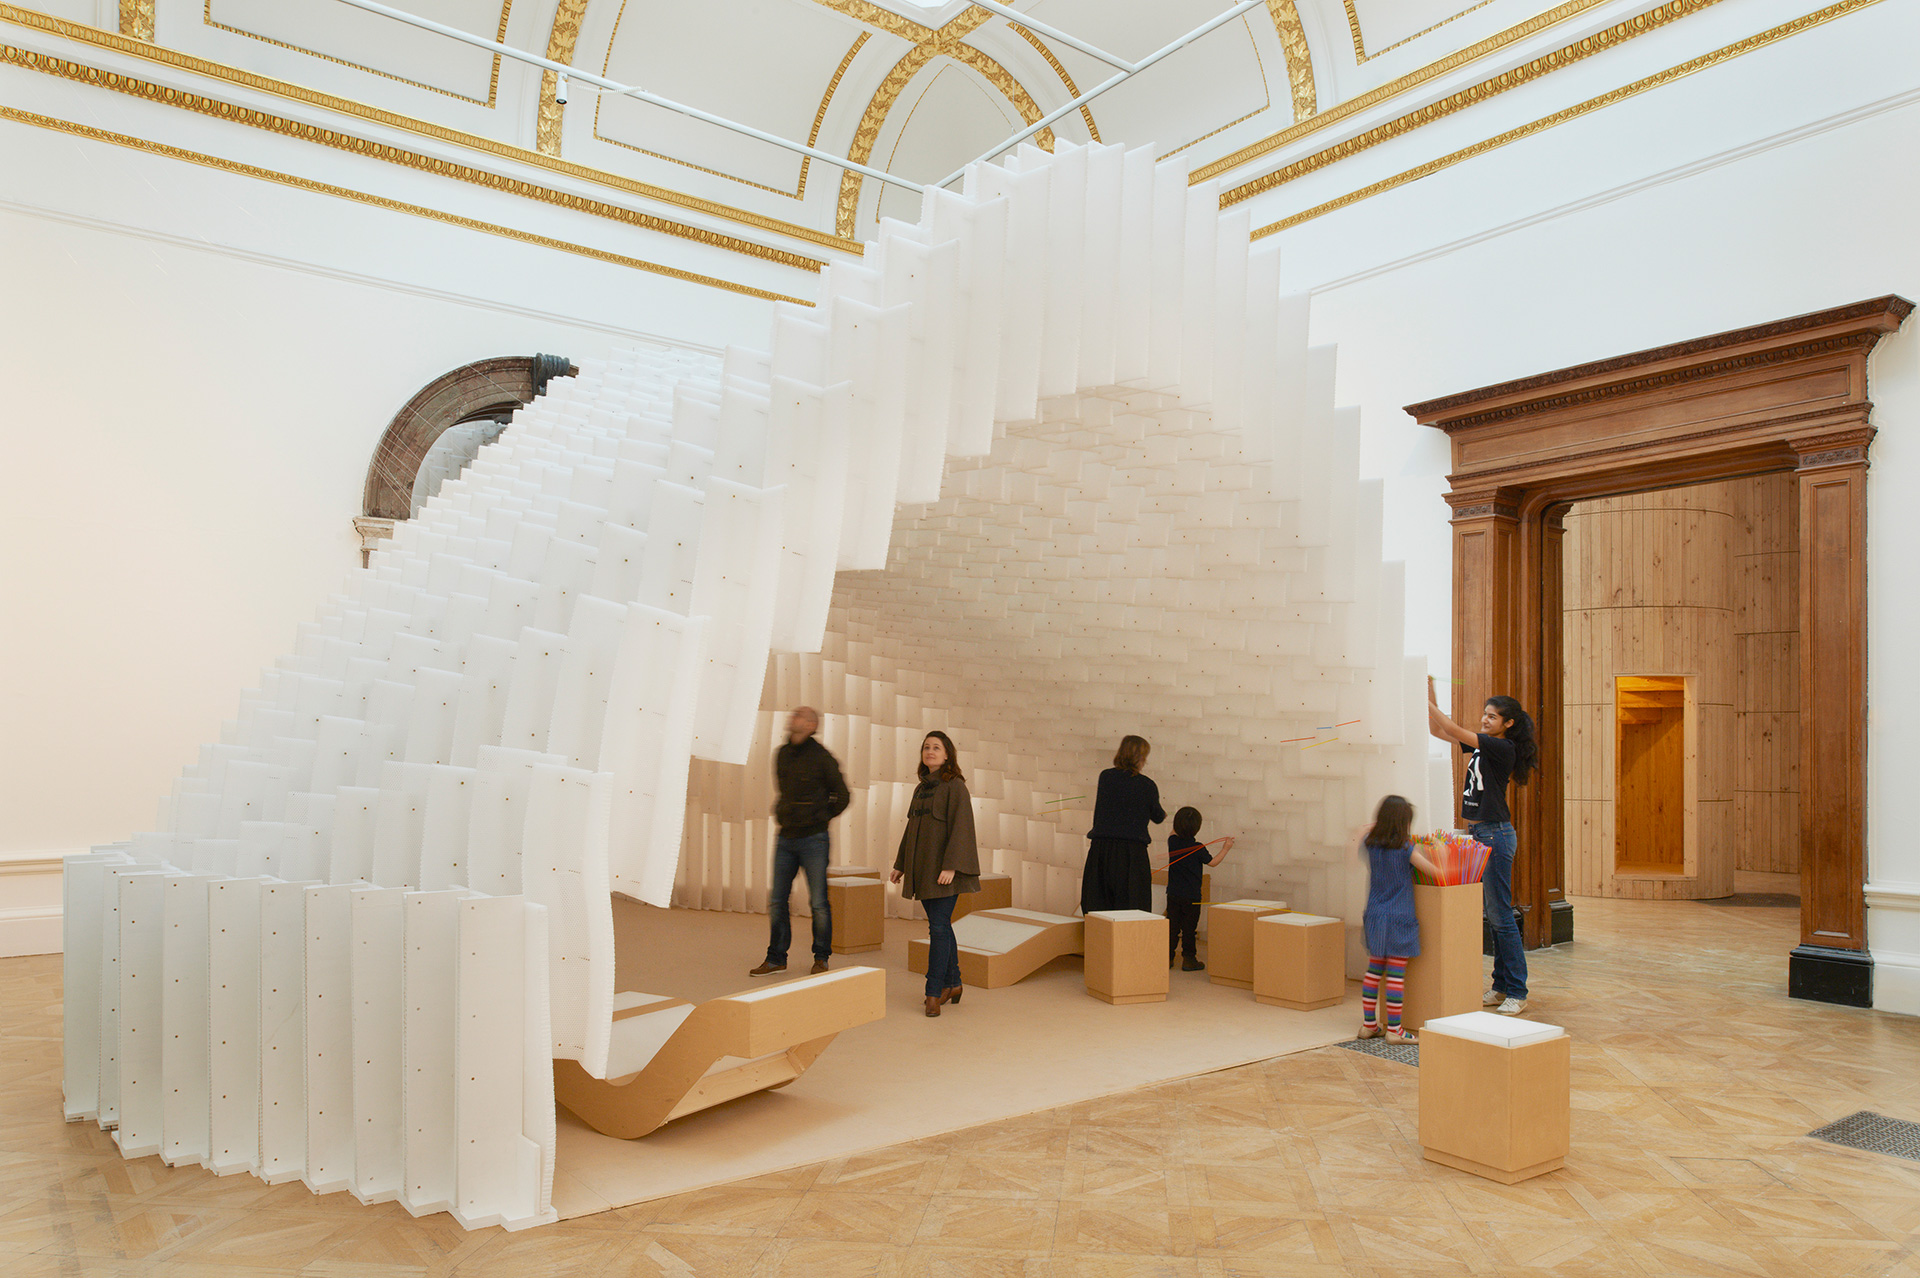 Sensing Spaces: Architecture Reimagined by Diebedo Francis Kere | Human within the Architect | Prem Chandavarkar | STIR